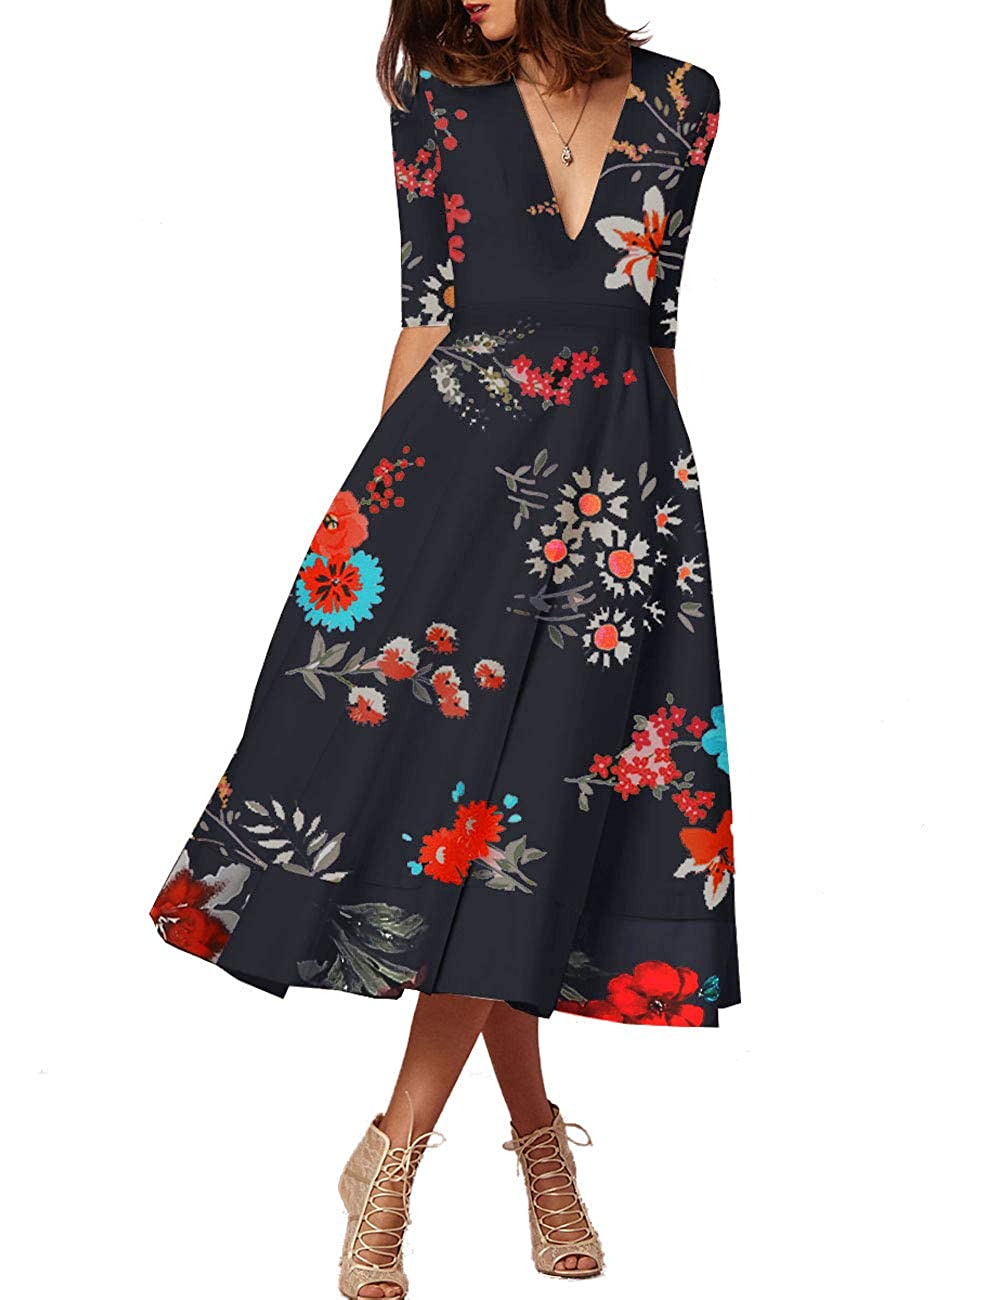 48e77551dff Amazon.com  FASHIONMIA Women s Floral Dress with Pocket 3 4 Sleeve V Neck  Summer Swing High Waist Party Midi Dresses  Clothing